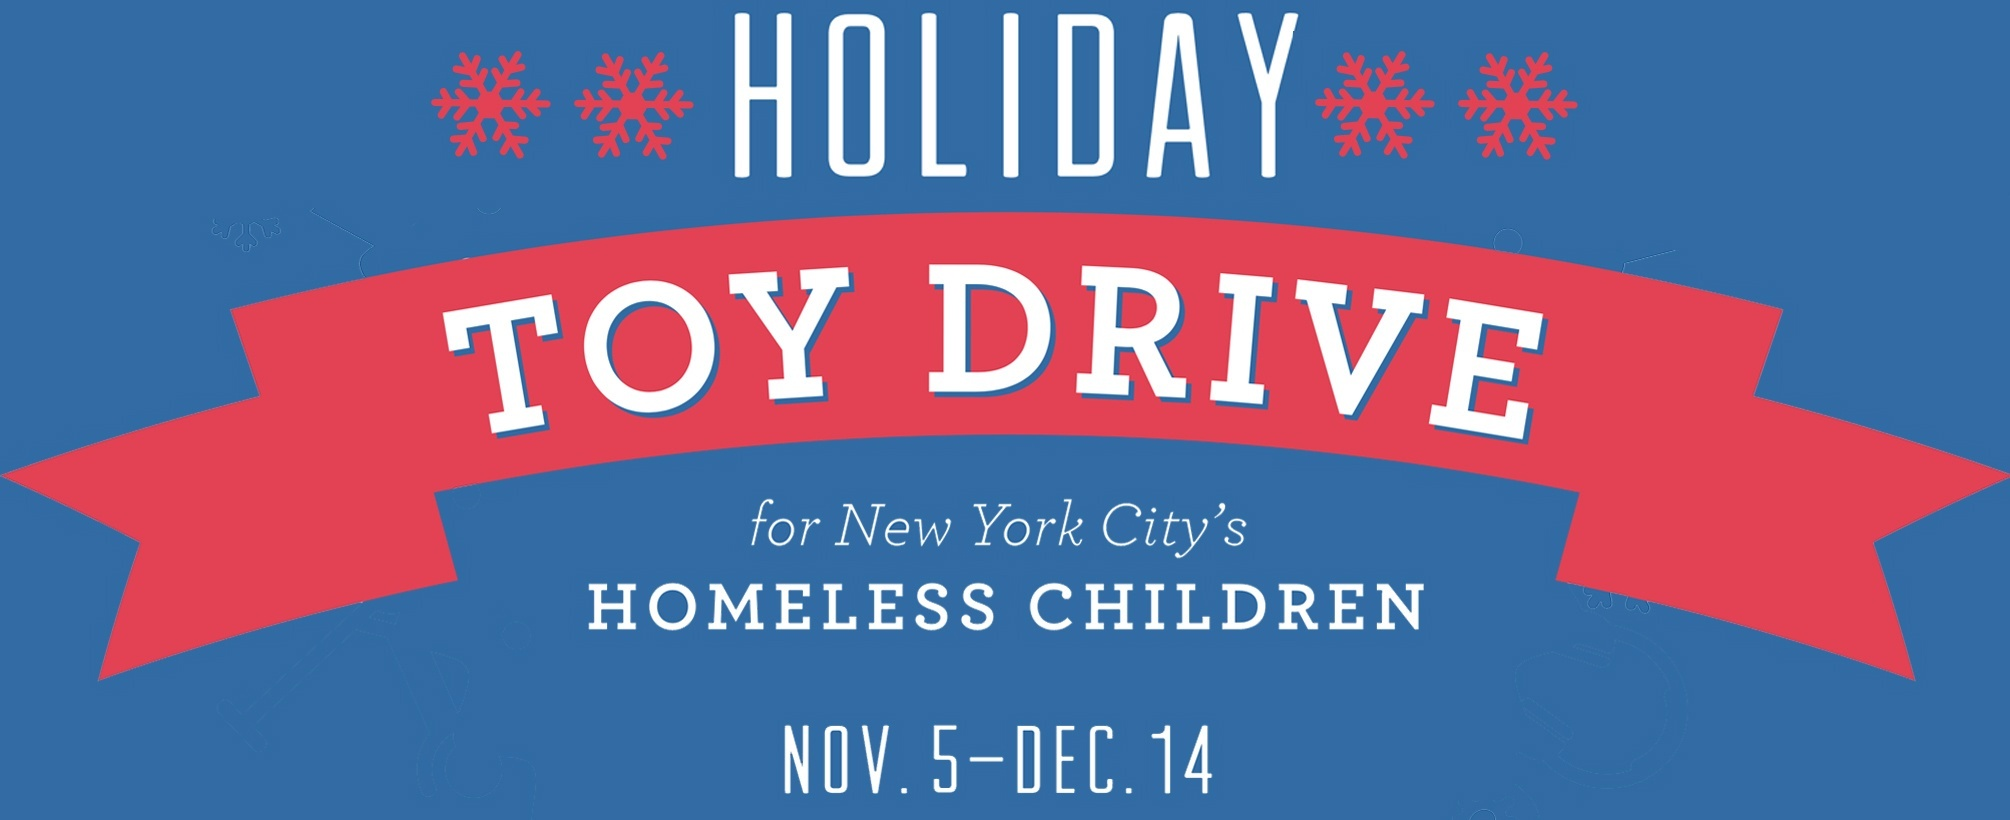 2018 Holiday Toy Drive